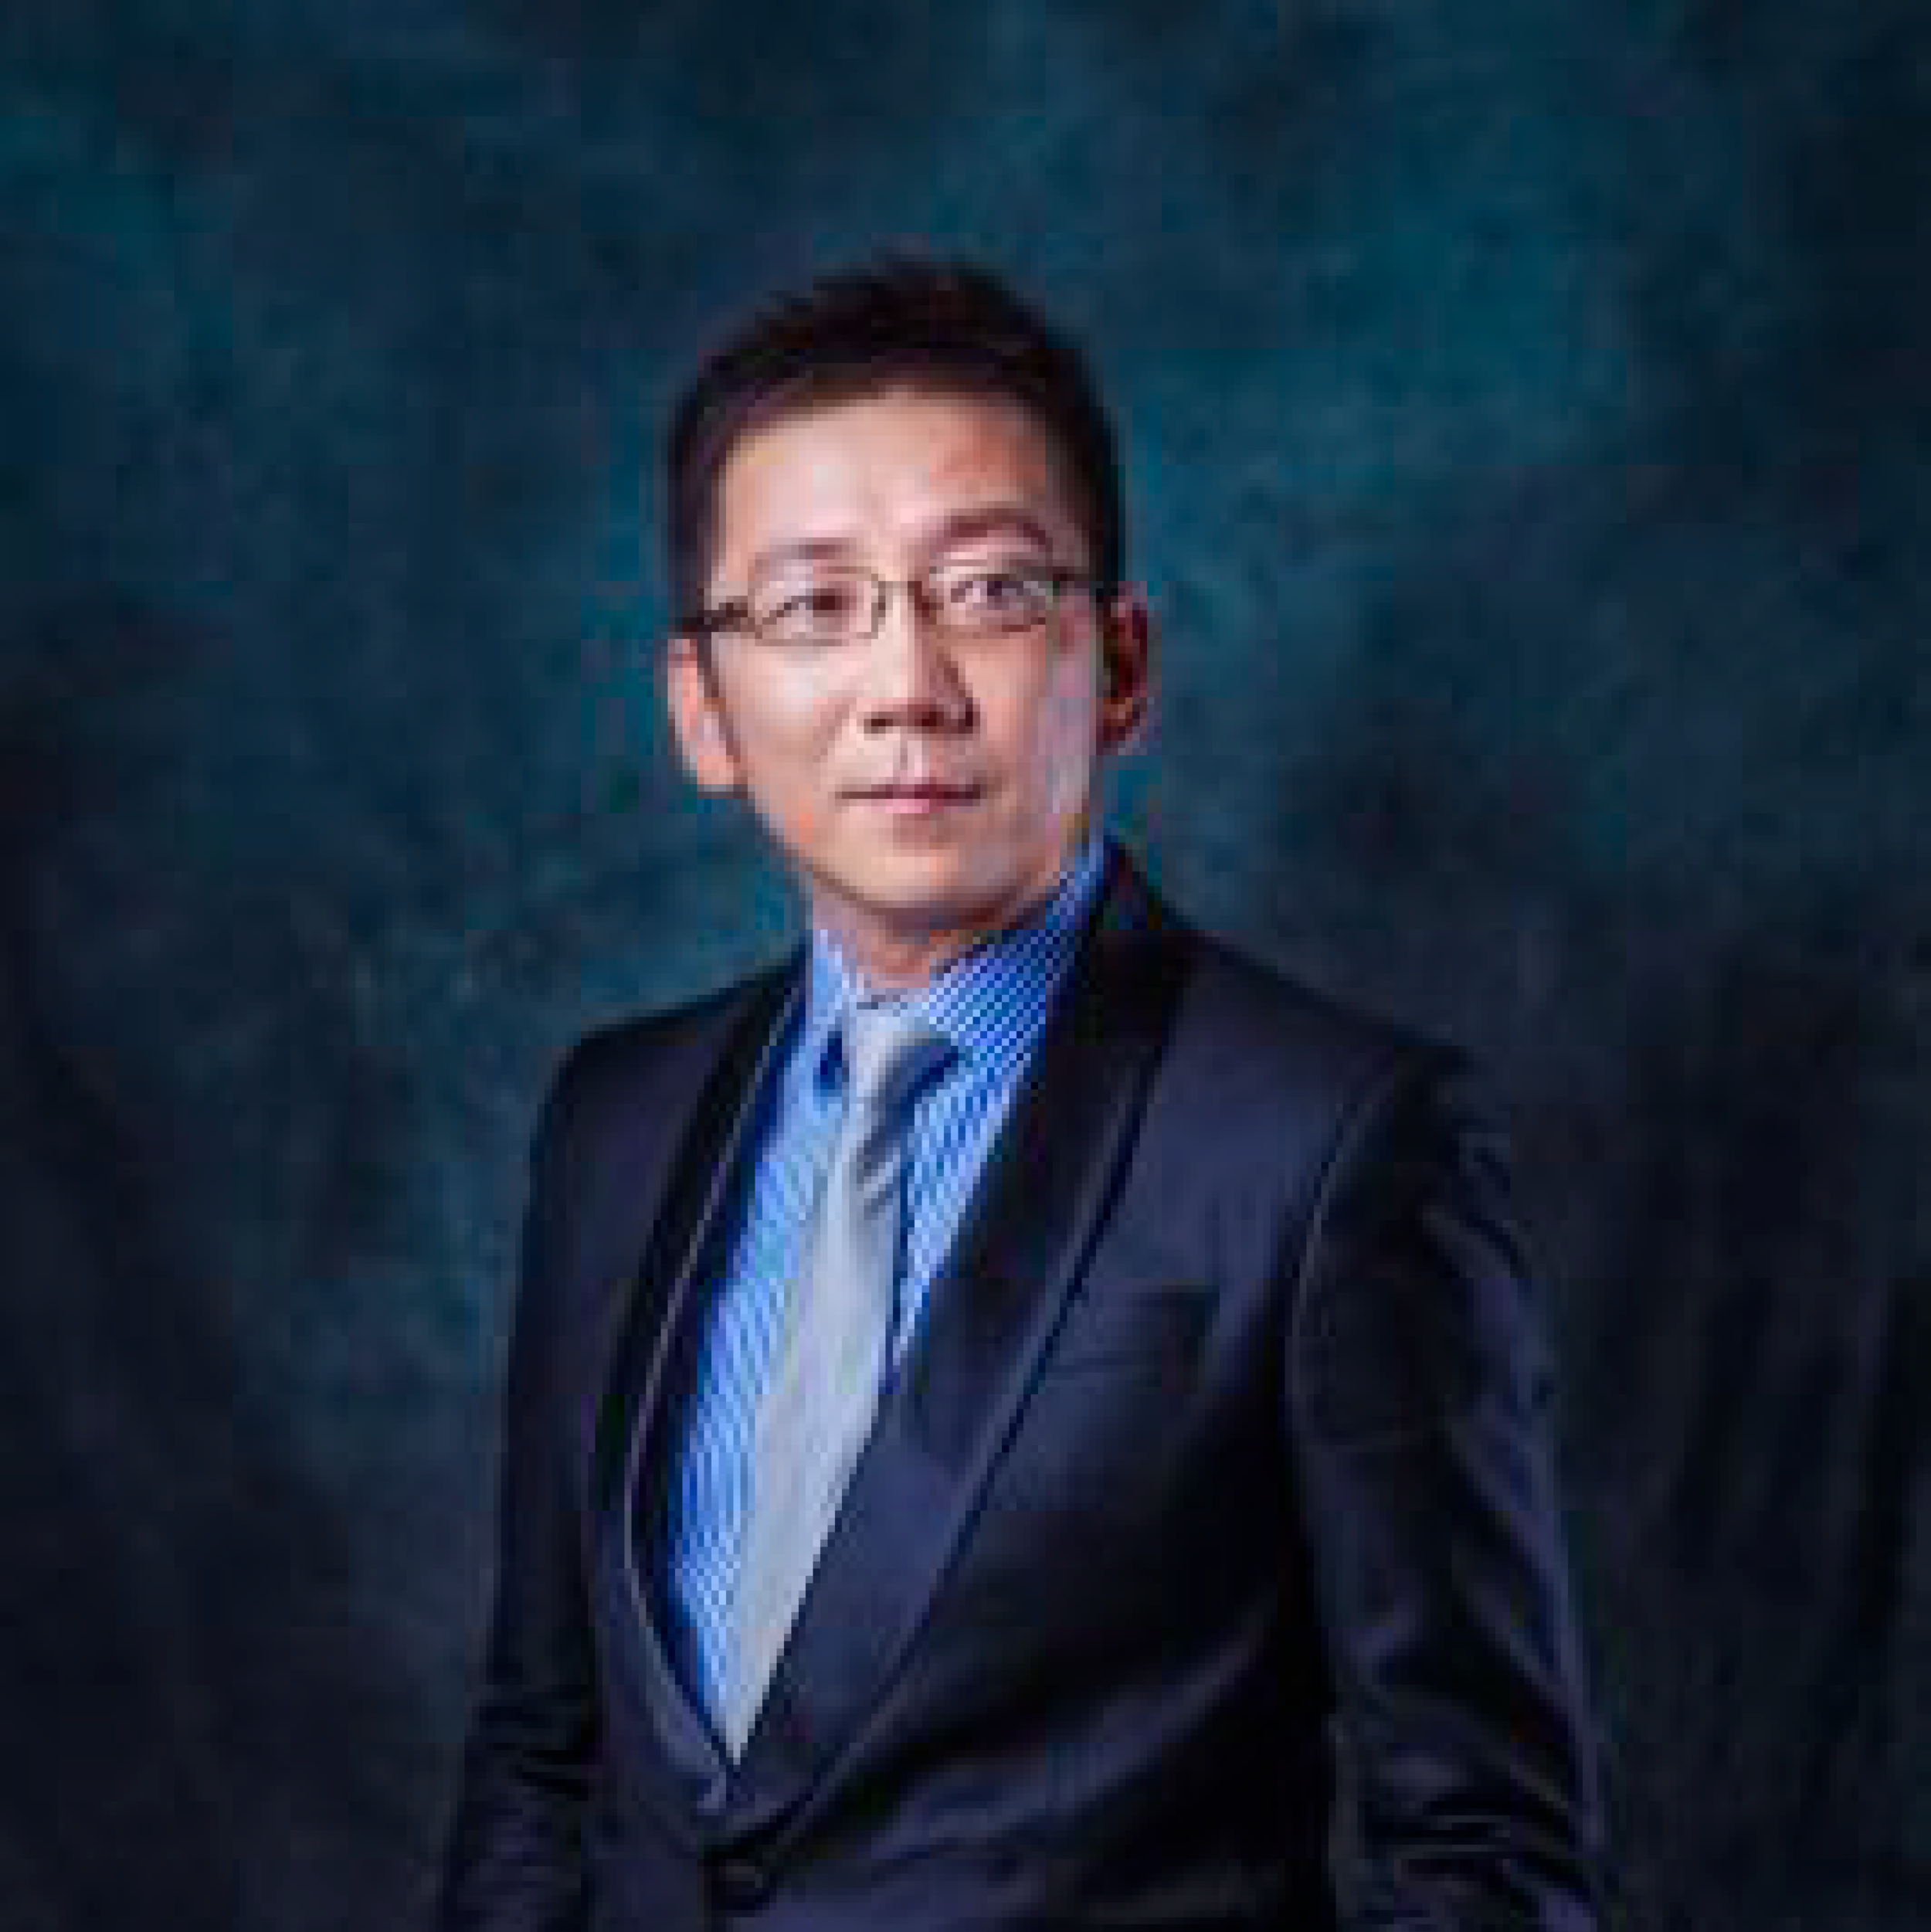 Copy of Feng Li | 李丰<br>Founder of Frees Fund<br>(峰瑞资本)